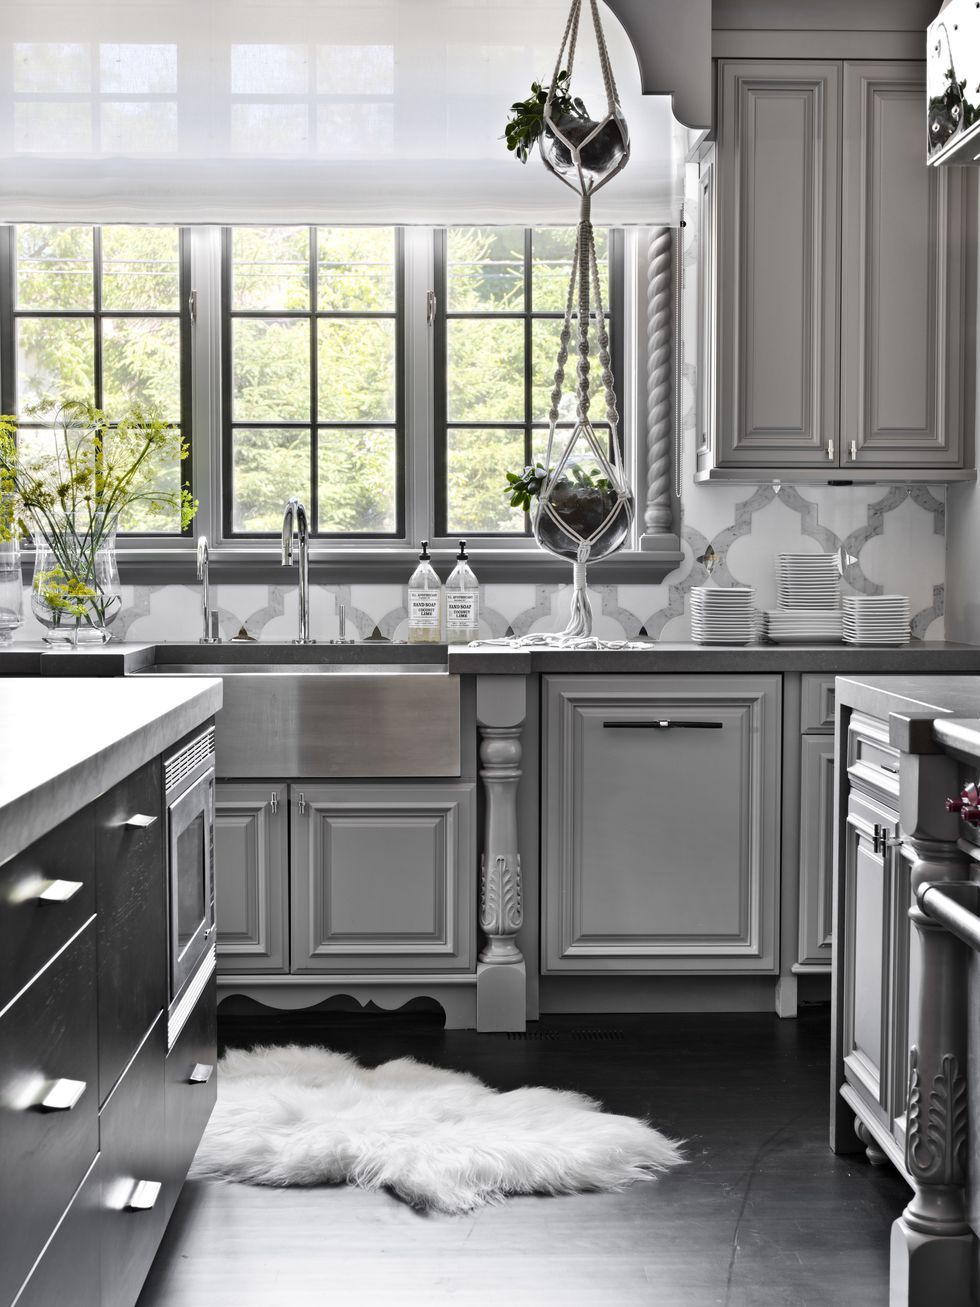 20 Gorgeous Kitchen Tile Backsplashes , Best Kitchen Tile Ideas